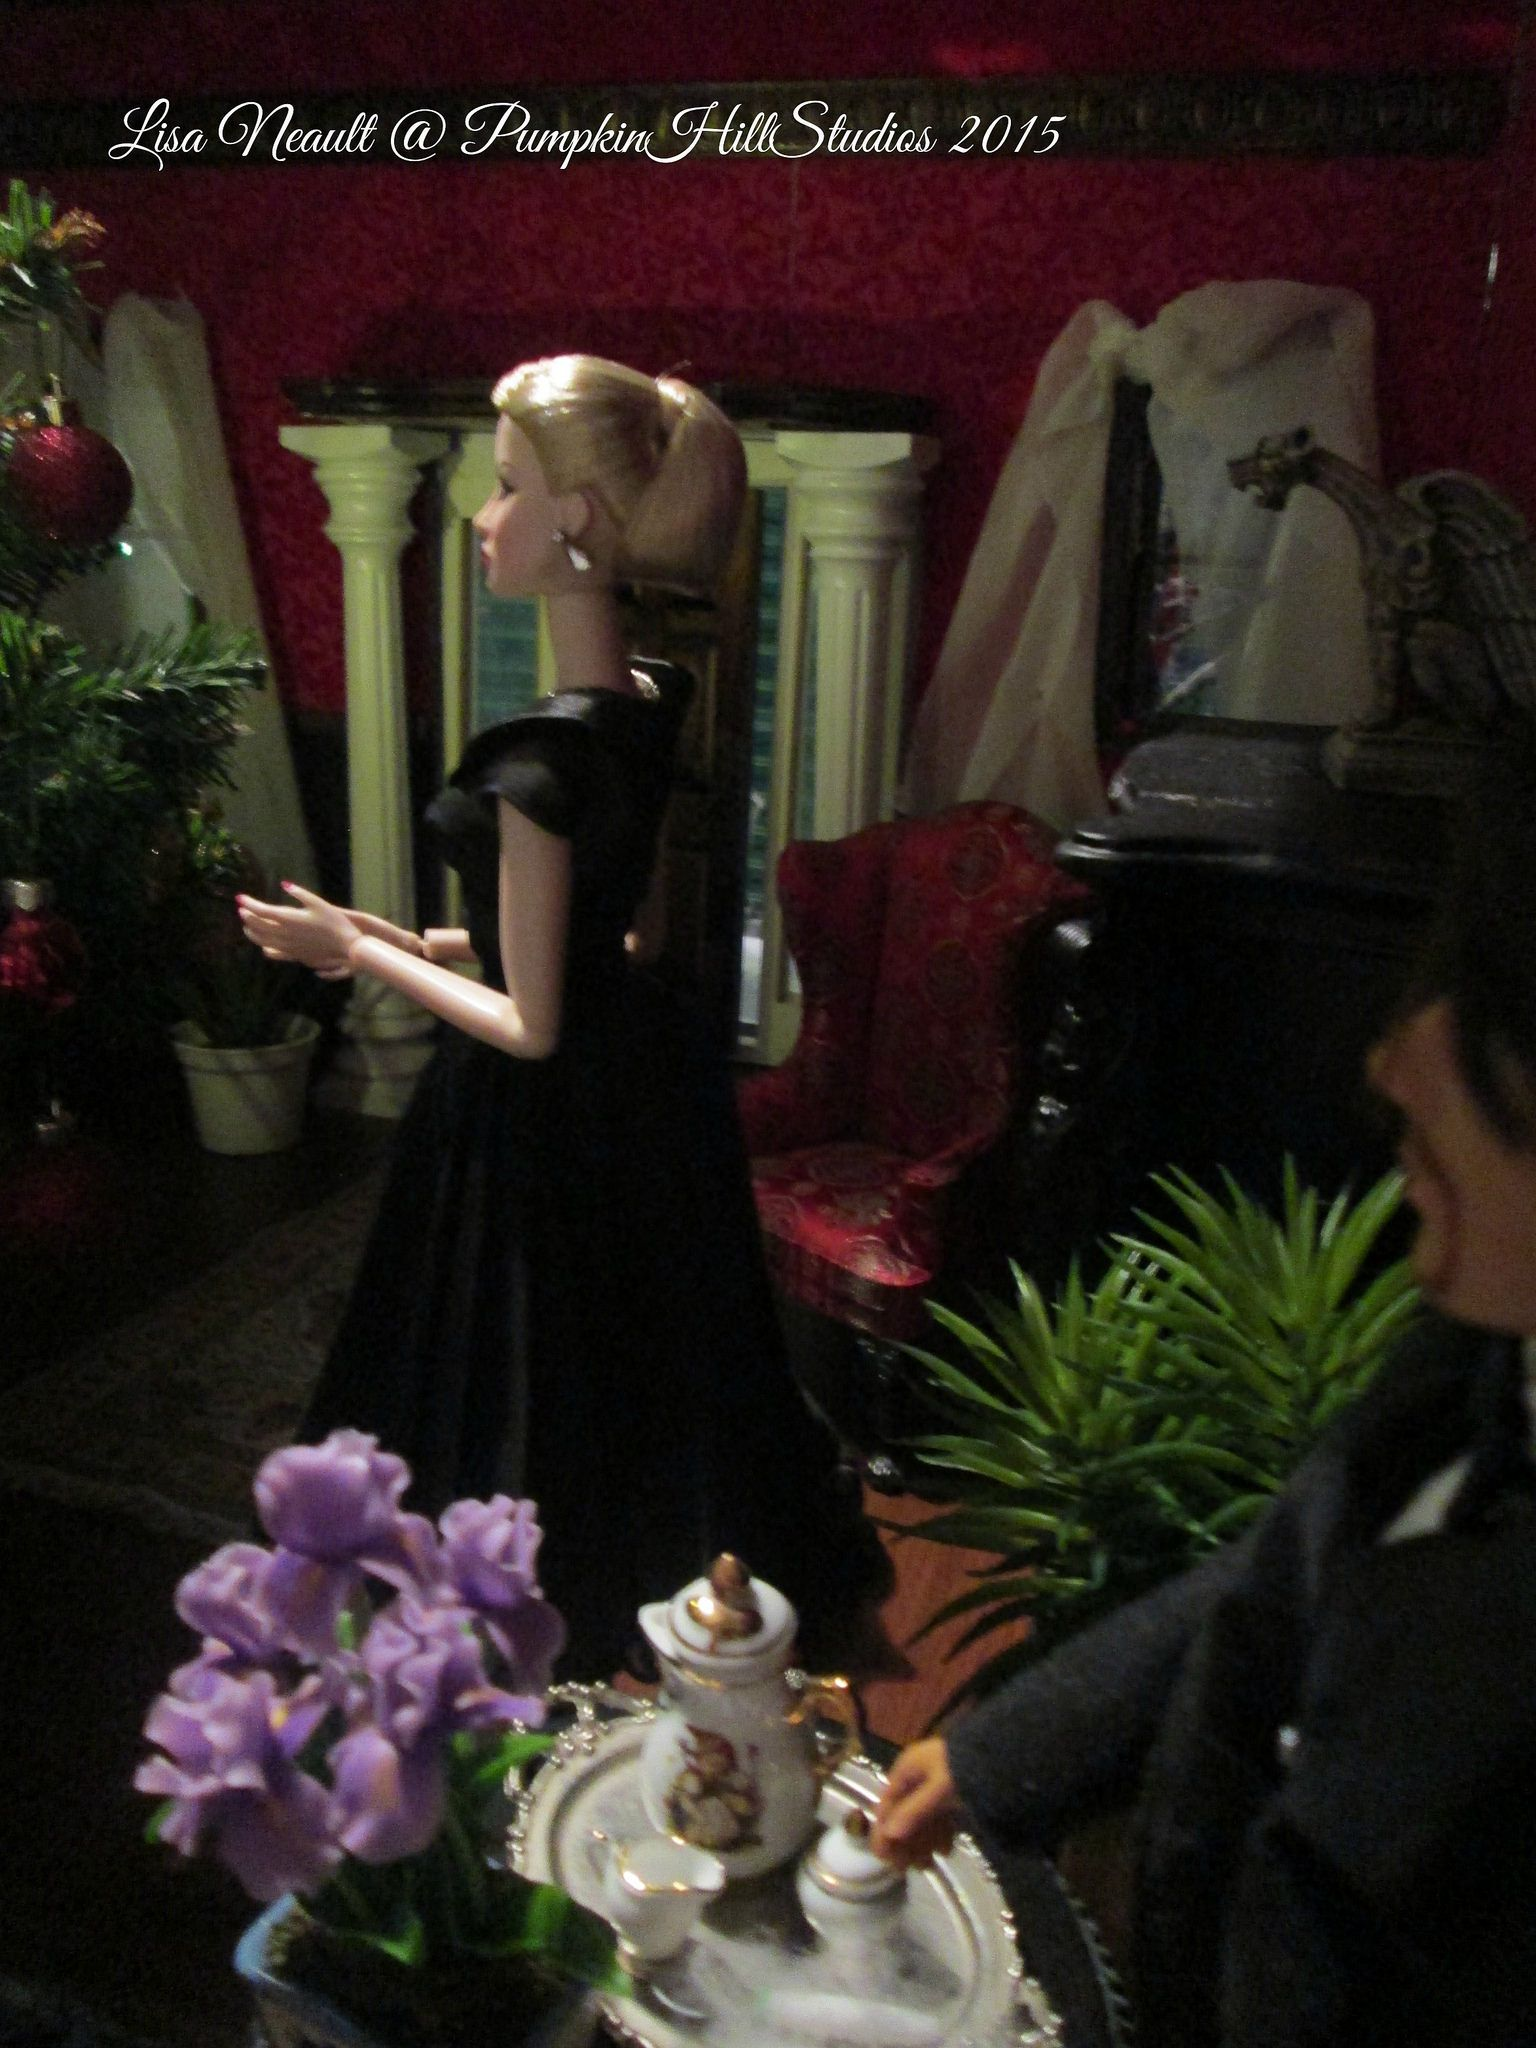 Visit my blog at the One Sixth Scale dollhouse http://theonesixthscaledollhouse.blogspot.com & Follow me!